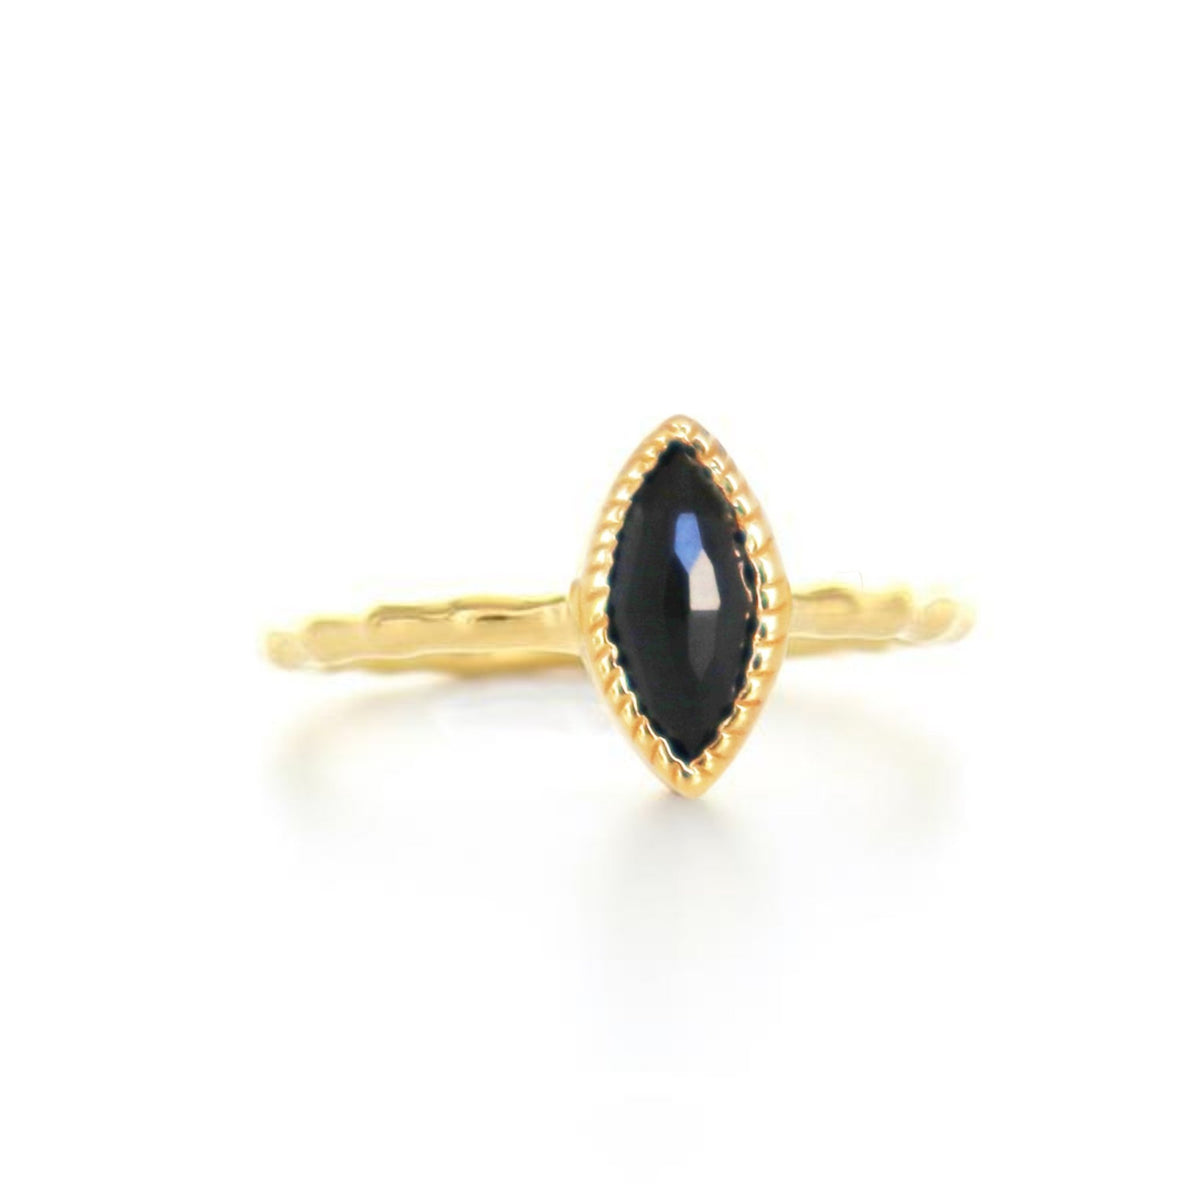 MINI TRUST MARQUISE RING - BLACK ONYX & GOLD - SO PRETTY CARA COTTER